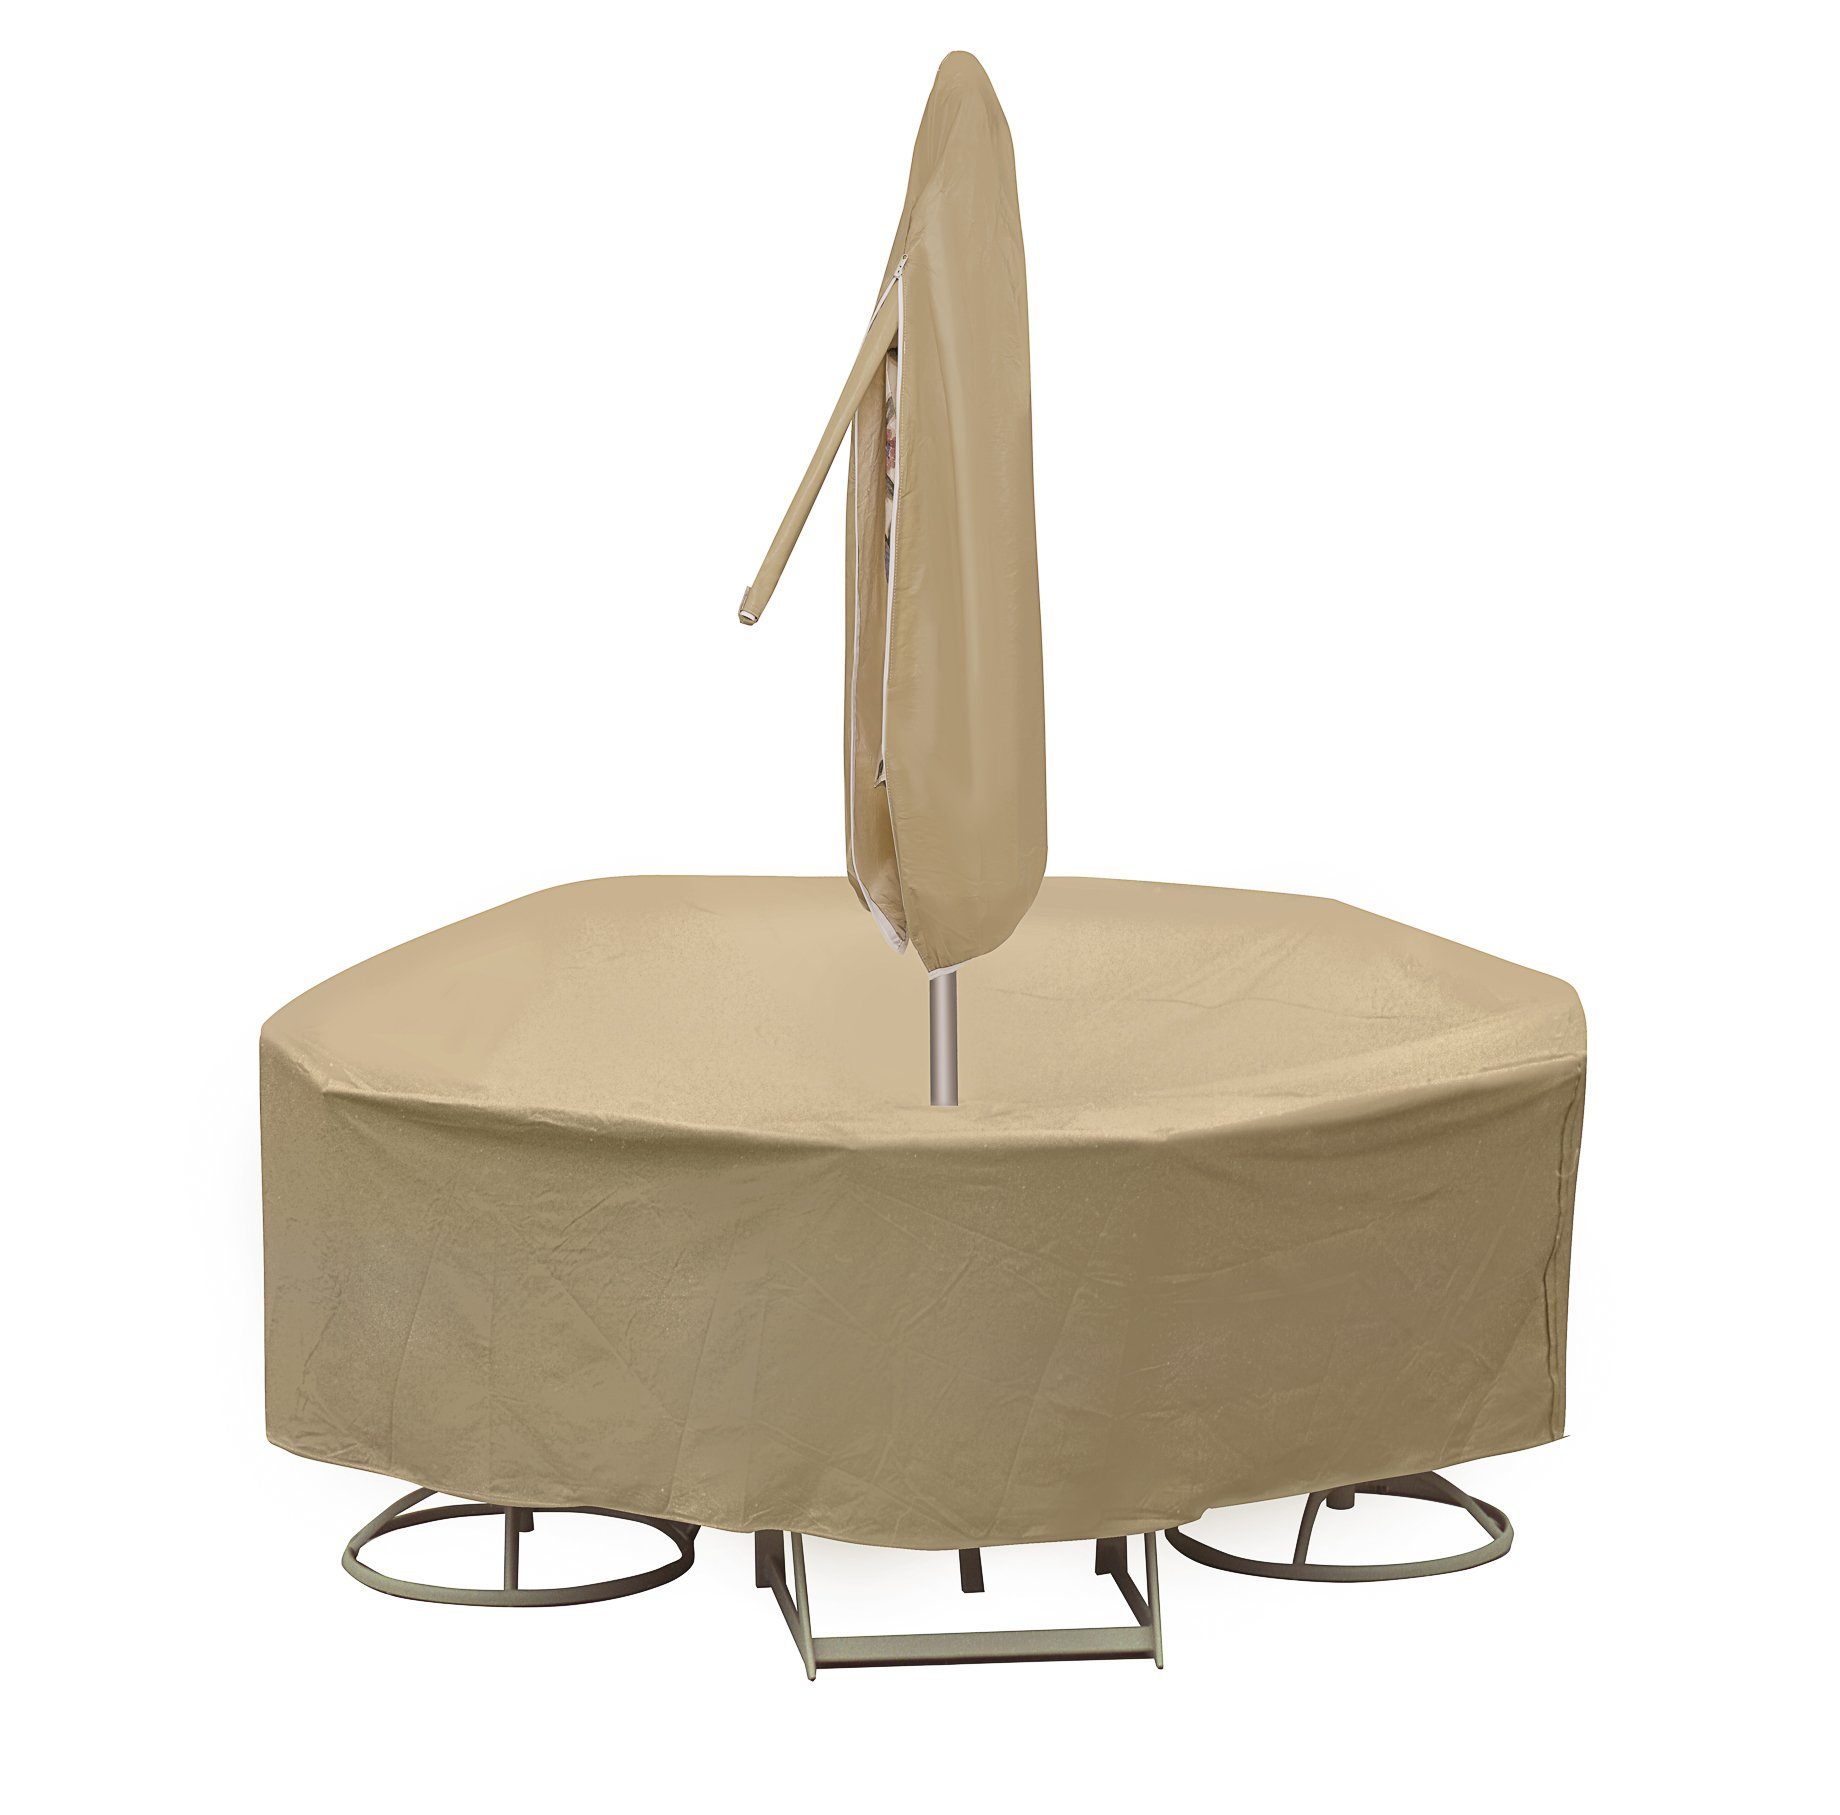 Protective Covers Weatherproof Patio Table and Highback Chair Set Cover, 60 Inch, Round Table, Tan